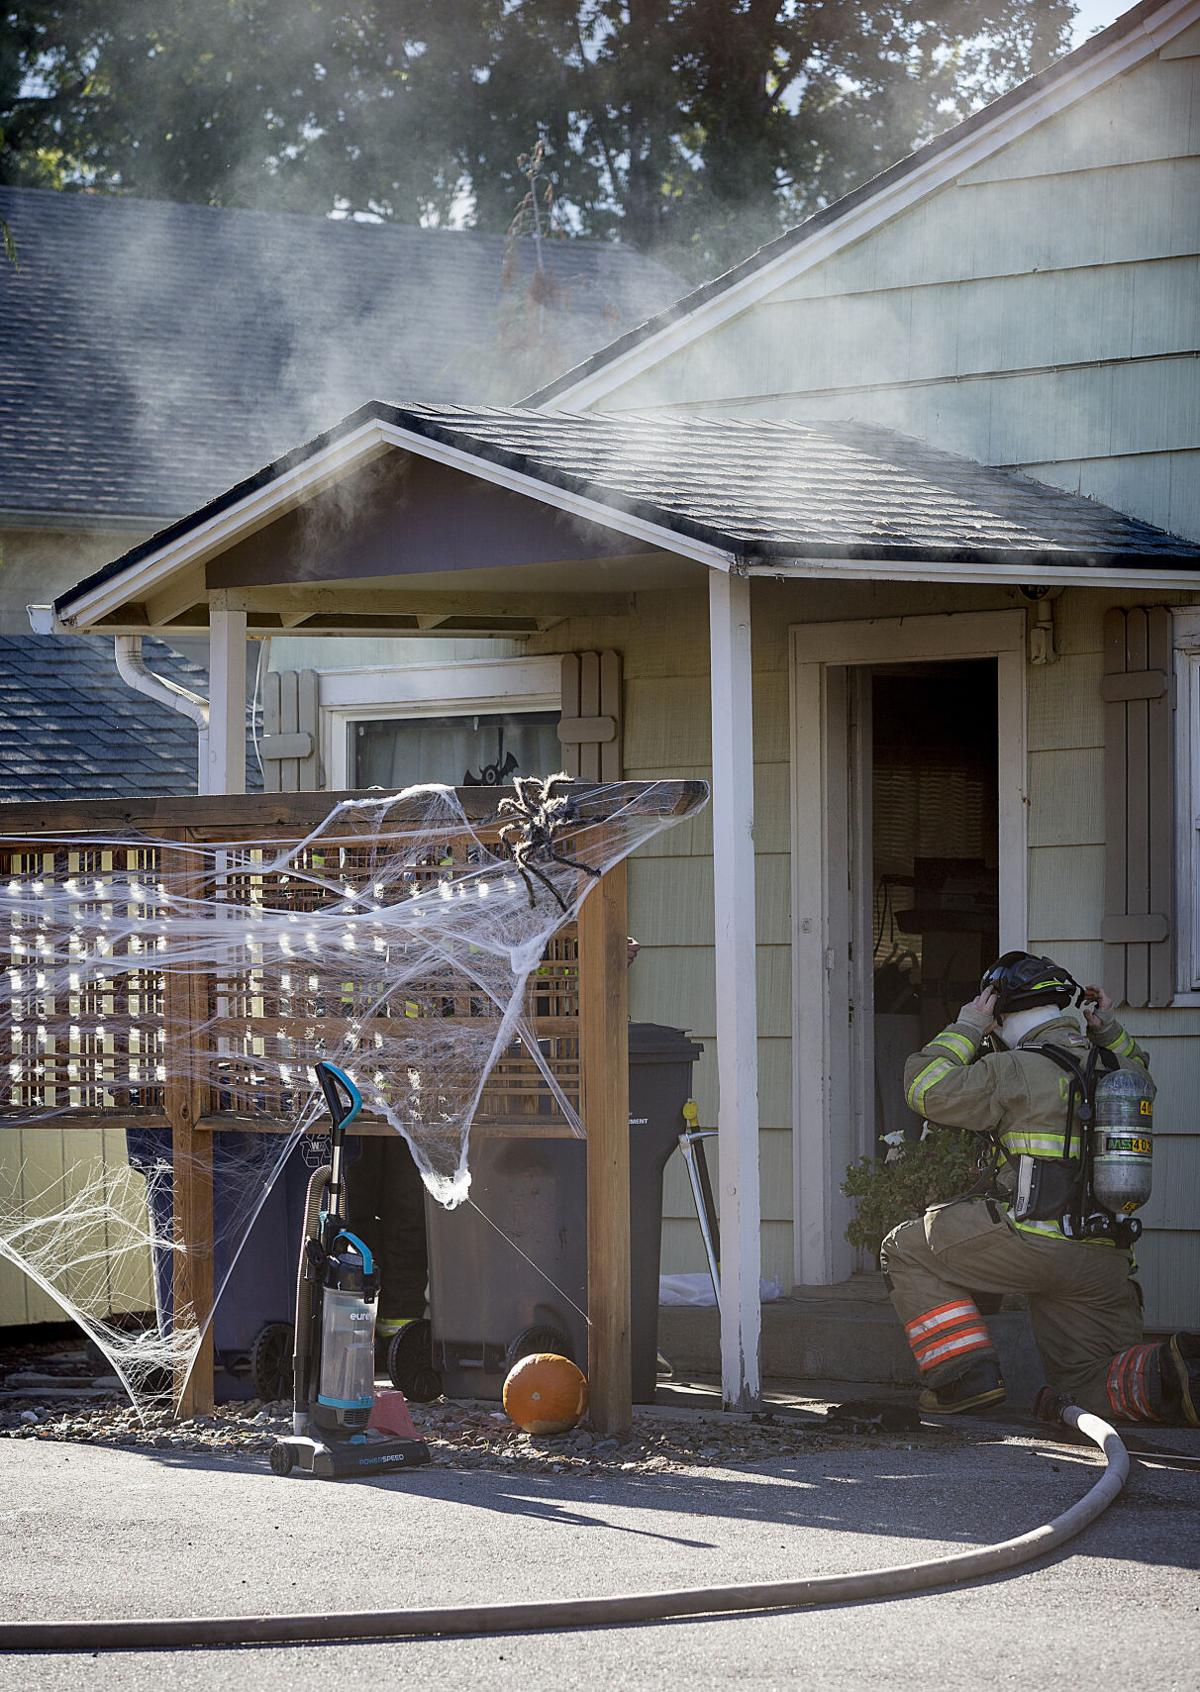 201031-newslocal-housefire 01.jpg